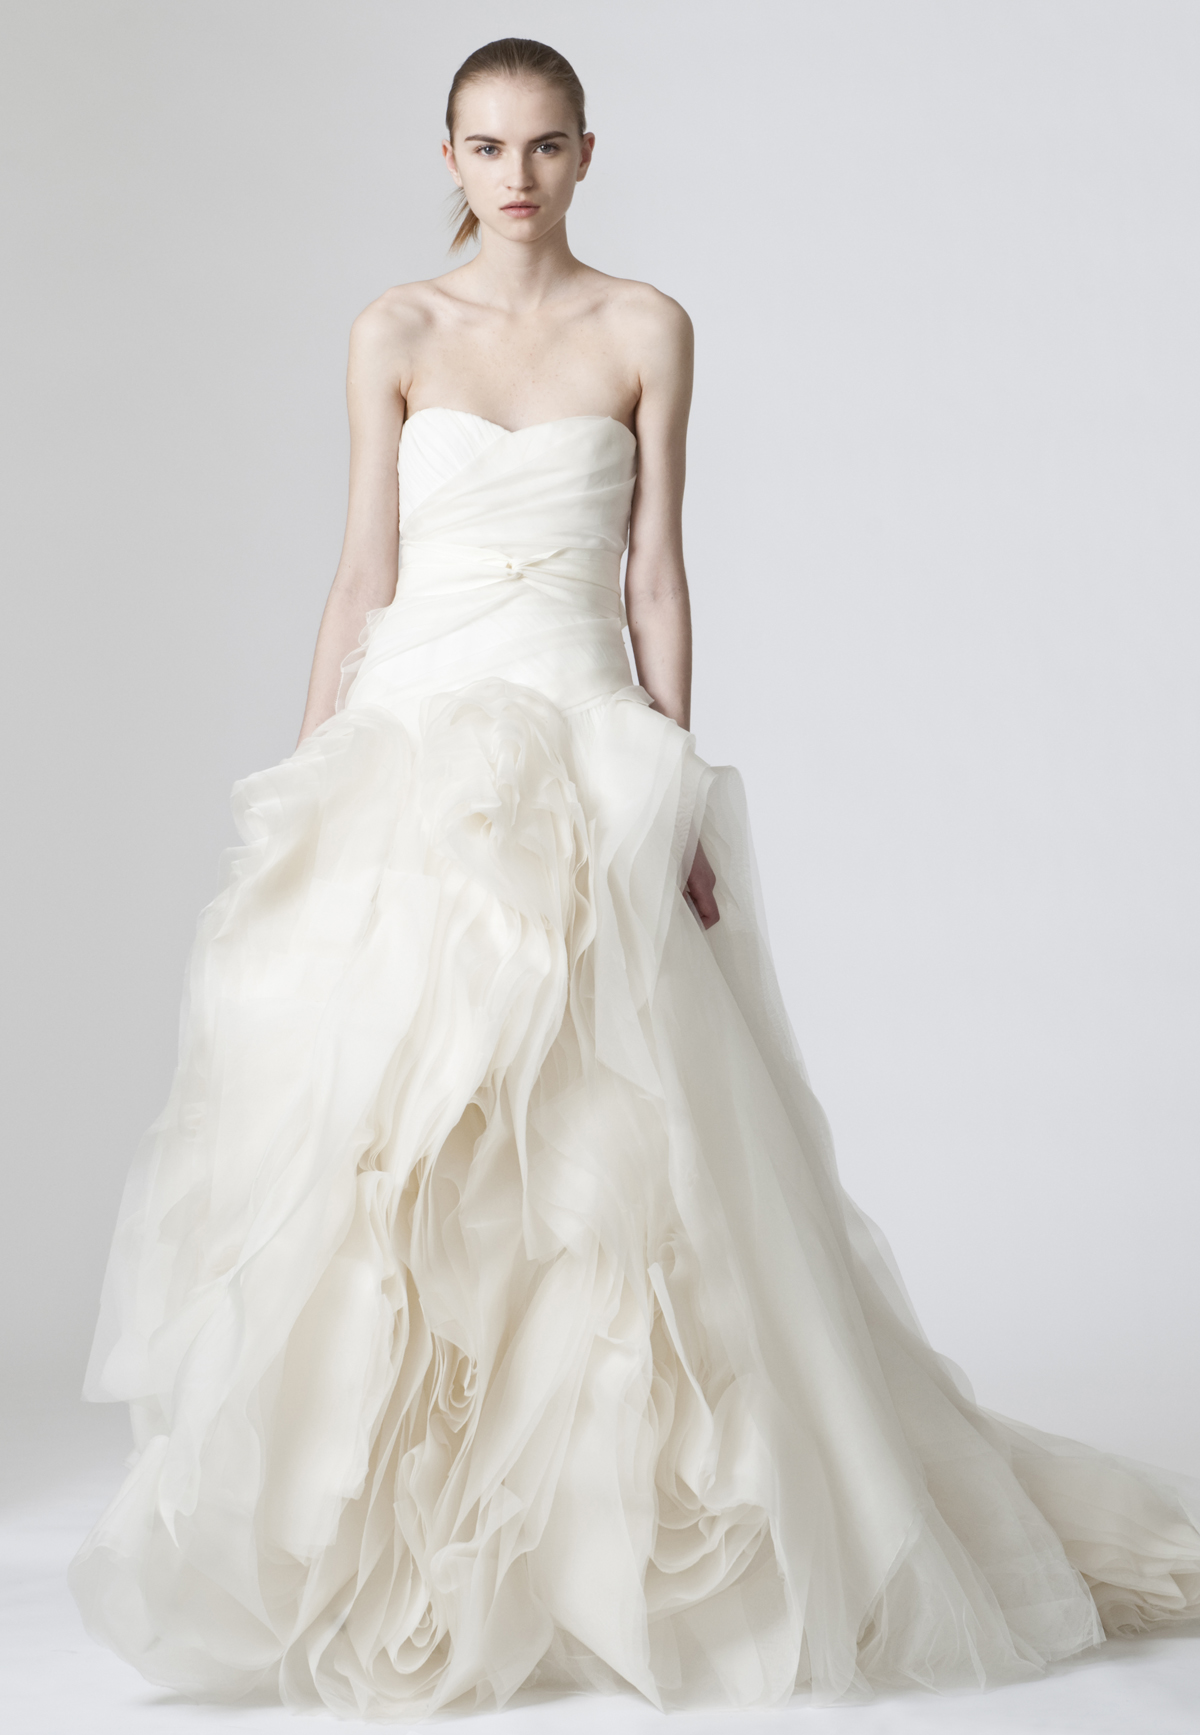 The Review of Iconic Vera Wang Diana Wedding Dress